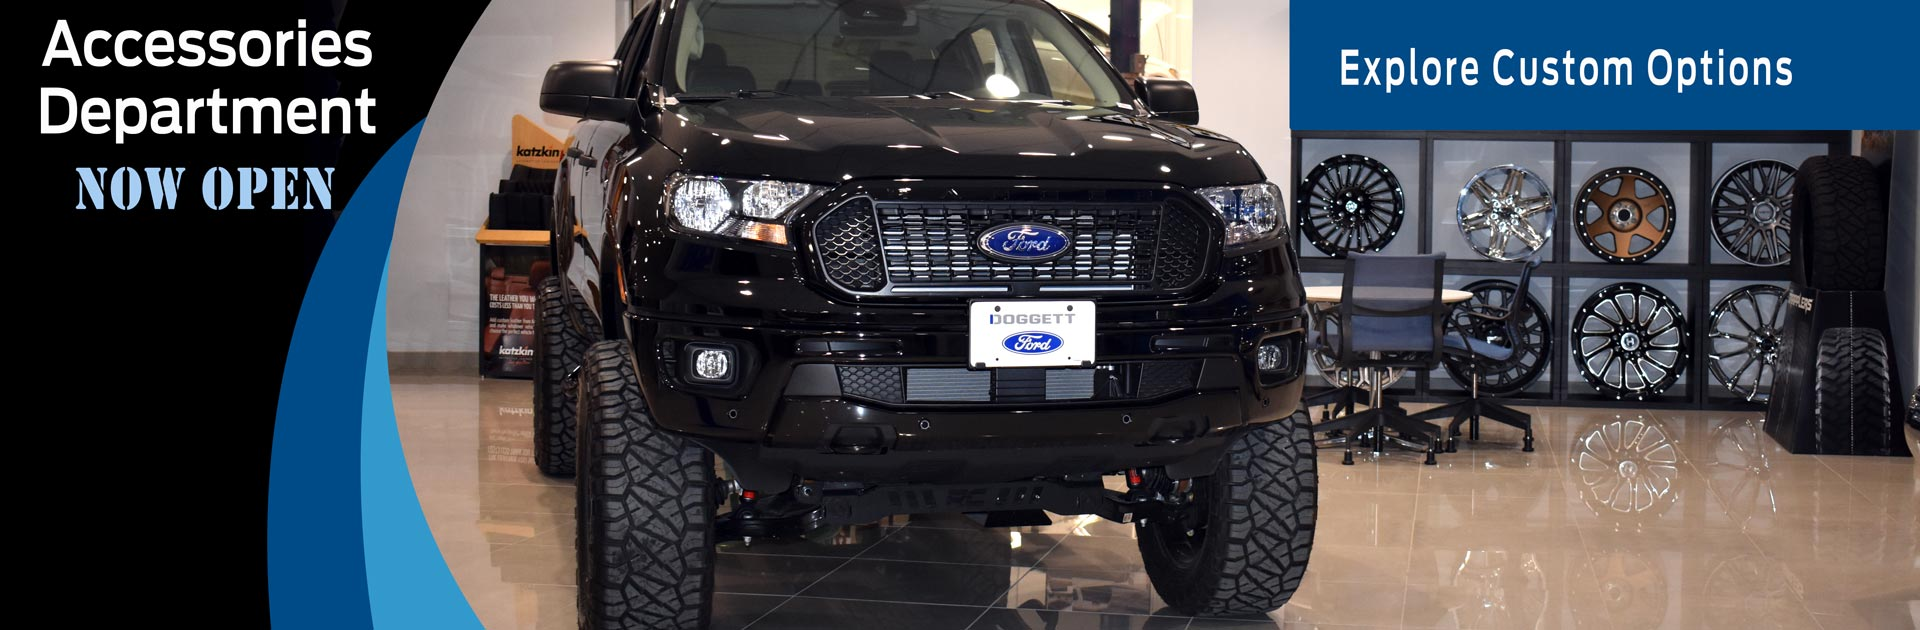 Accessories Department Now Open at Doggett Ford